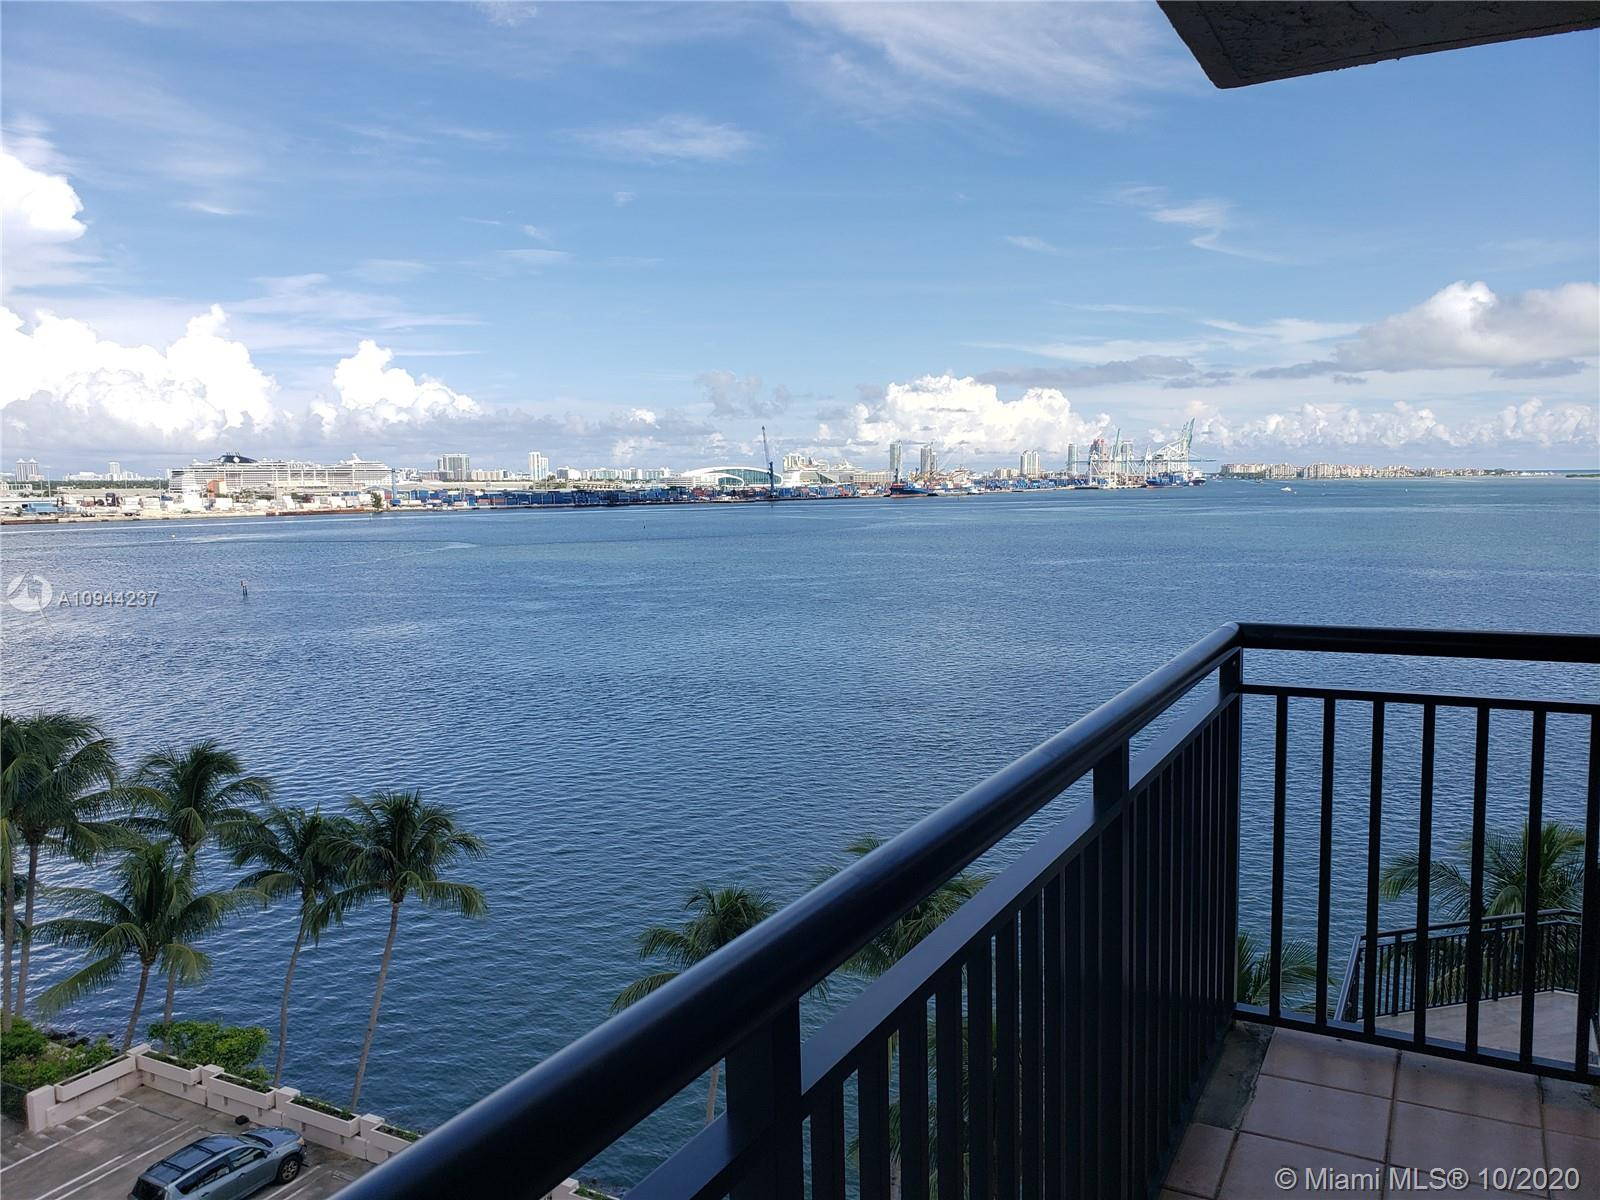 540 SE Brickell Key Dr # 928, Miami, Florida 33131, ,1 BathroomBathrooms,Residential Lease,For Rent,540 SE Brickell Key Dr # 928,A10944237